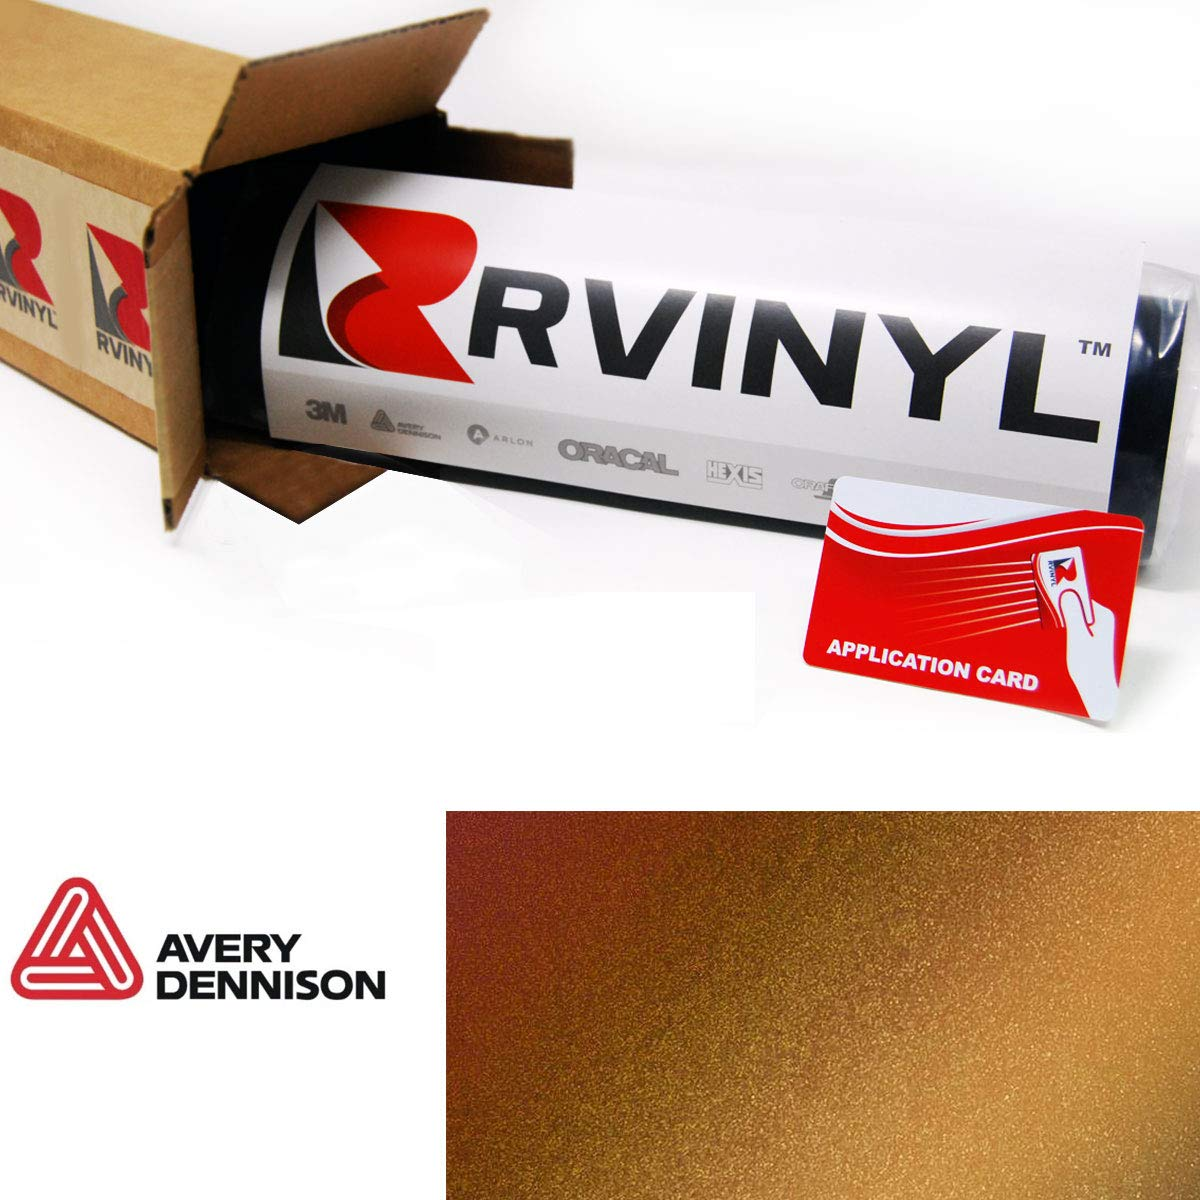 12 x 60 w//Application Card C-Avery-SW900-251-S Avery SW900 251-S ColorFlow Satin Fresh Spring Supreme Wrapping Film Vinyl Vehicle Car Wrap Sheet Roll